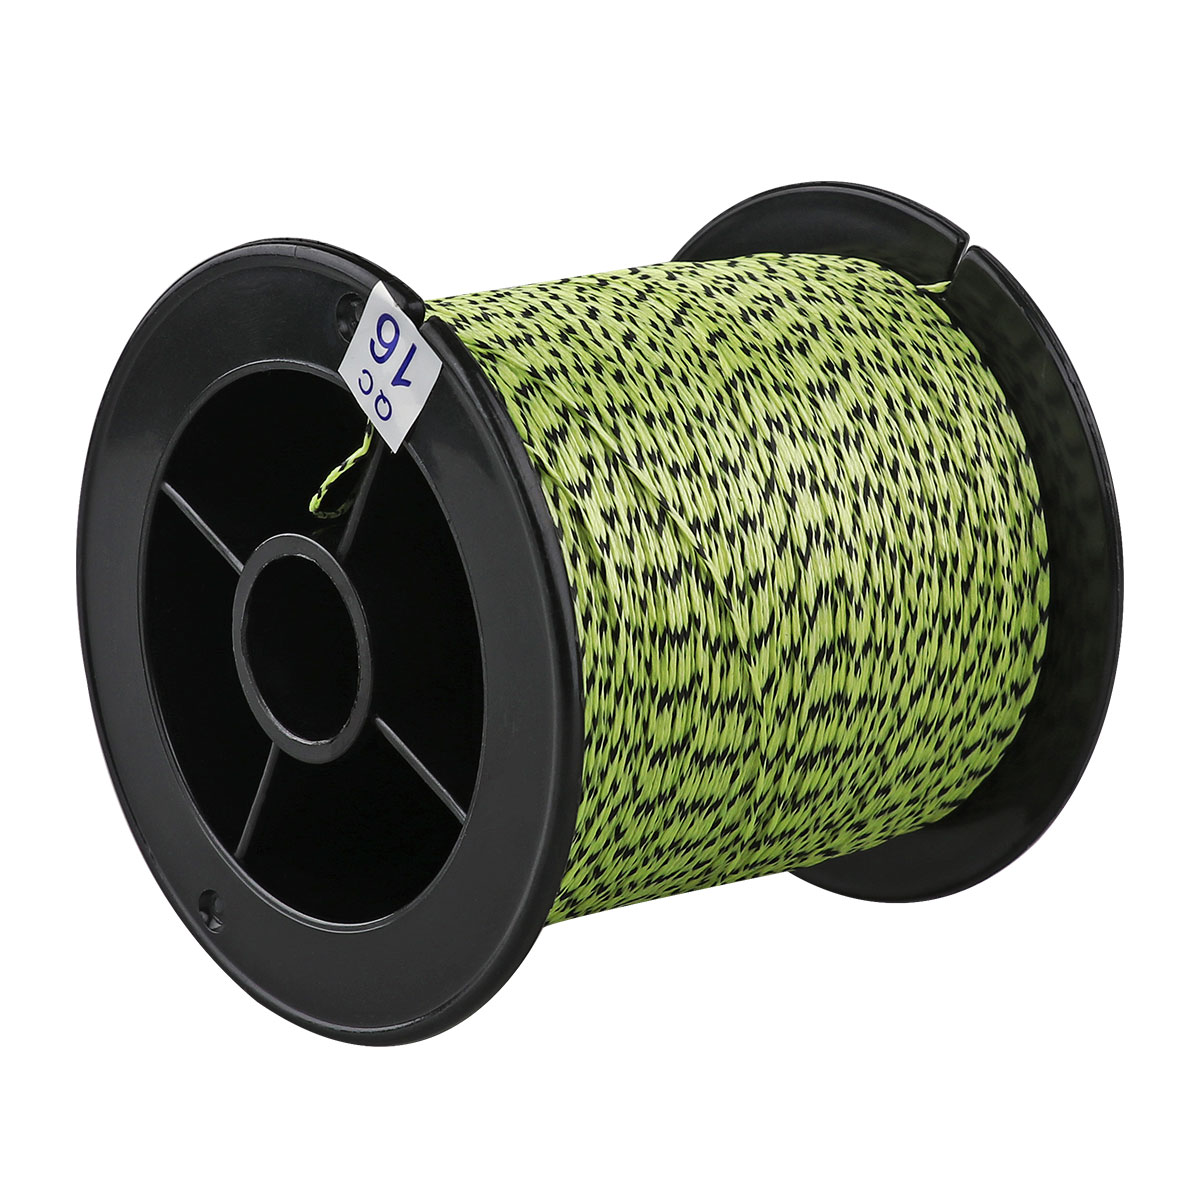 Image 5 - Quality fishing tackle products online braided fishing line 8 Strands 500M 1000M pe ice fishing saltwater 8 300LBS thread cord-in Fishing Lines from Sports & Entertainment